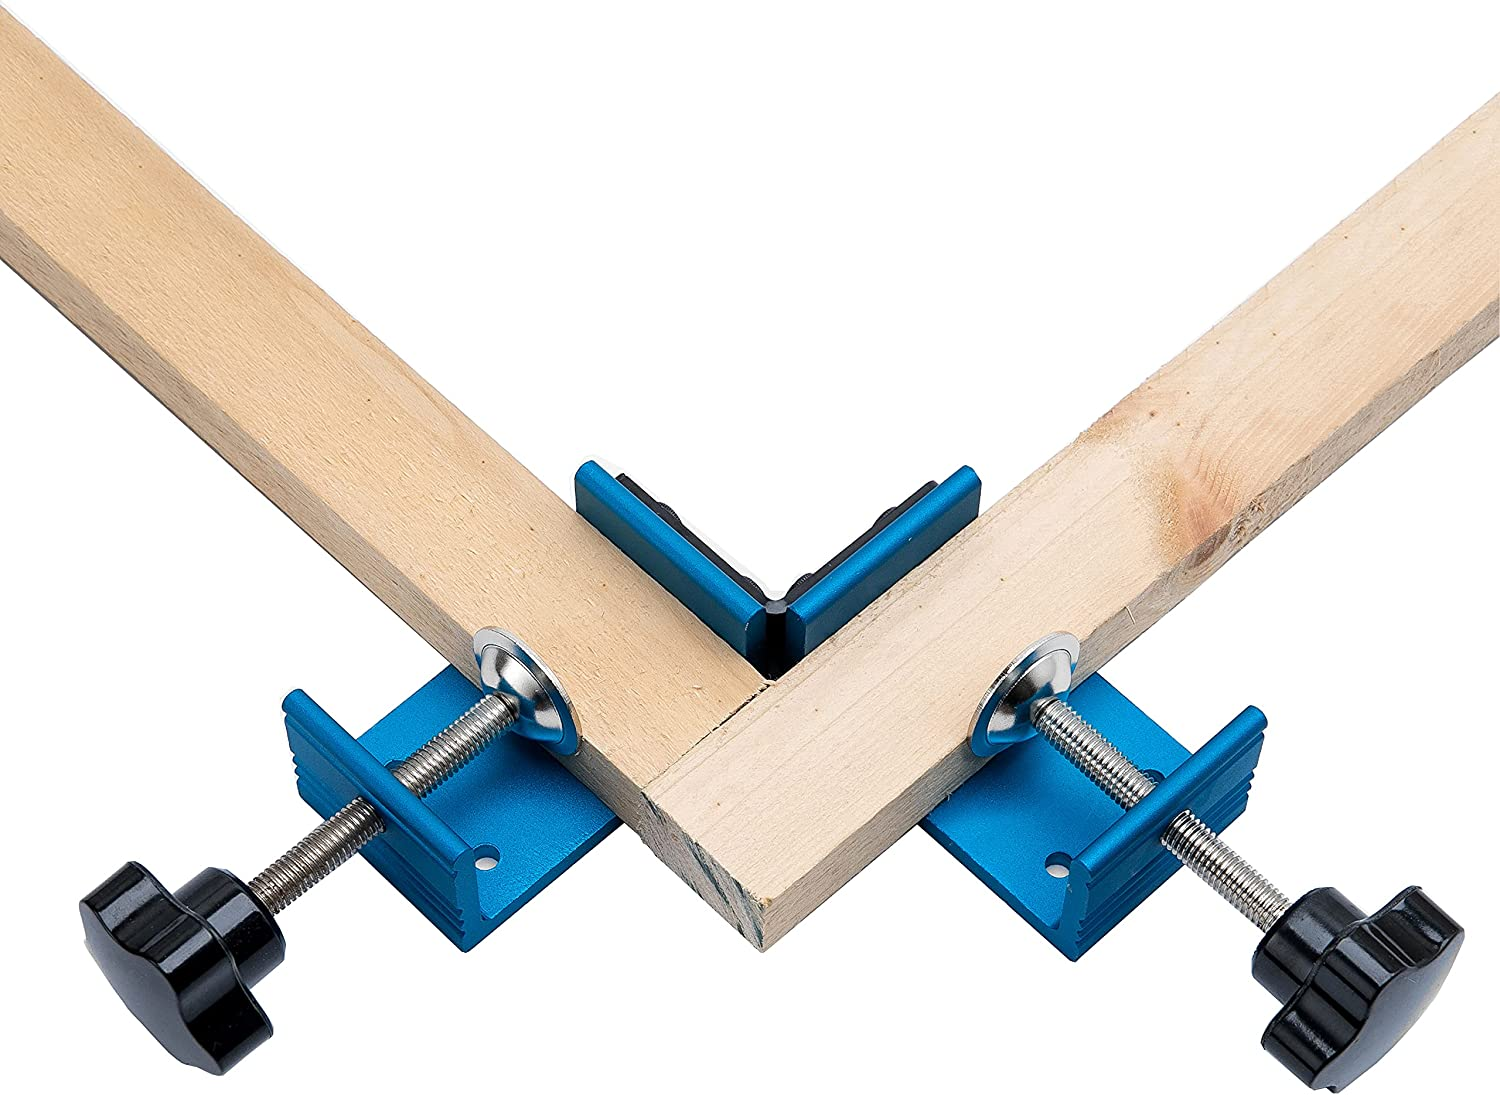 Right Angle Clamp ,90 Degree Corner Clamp with Adjustable Double Handle Corner Clamp for Woodworking the Working of Framing Drilling Welding Doweling Making Cabinet Installing Furniture